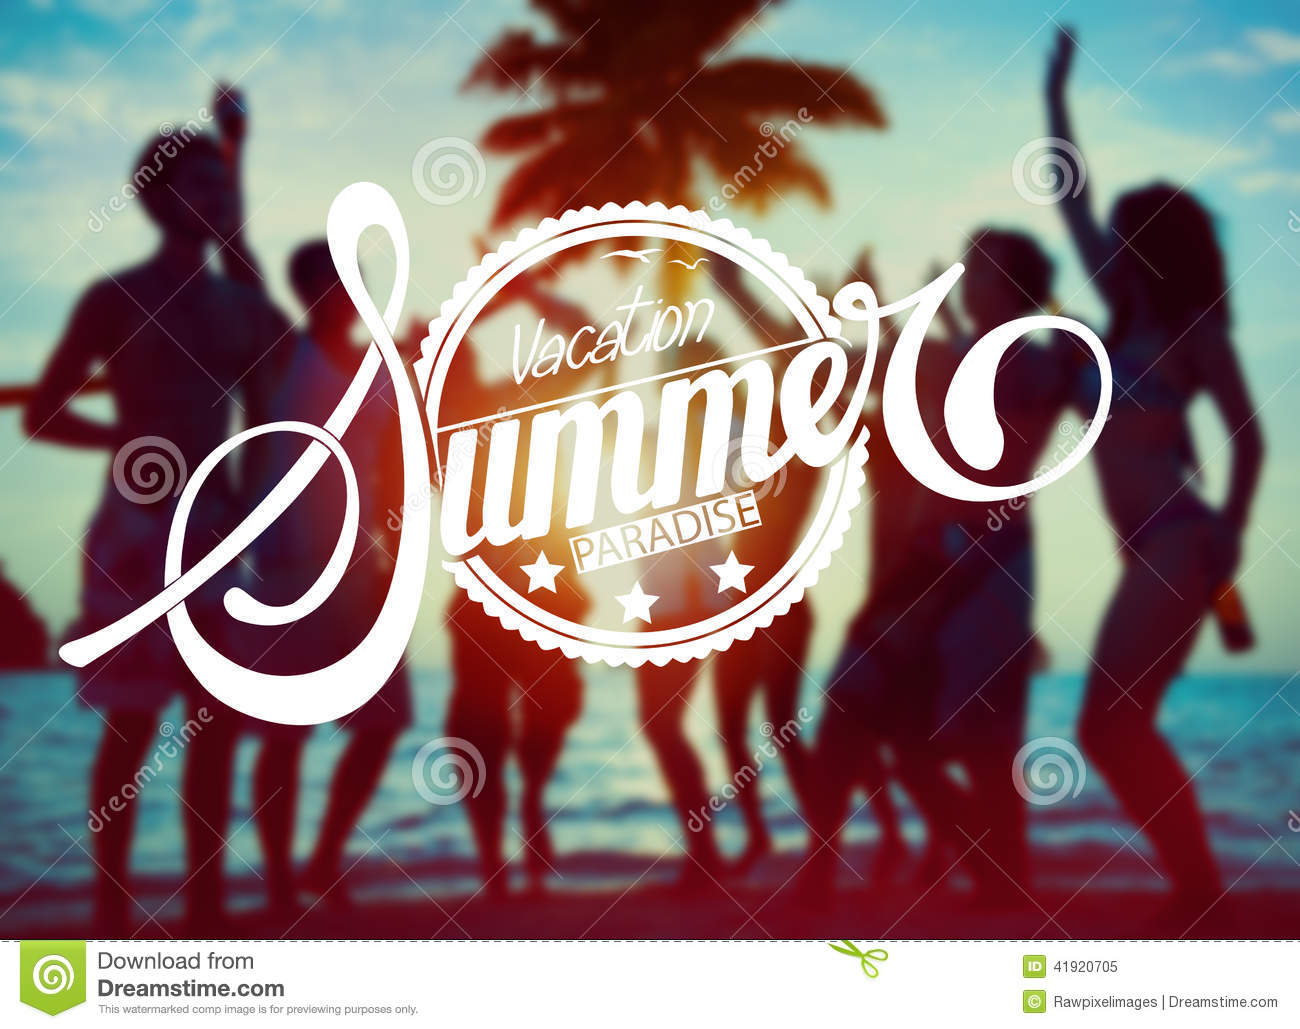 Silhouettes of People Partying : Vacation Summer Paradise